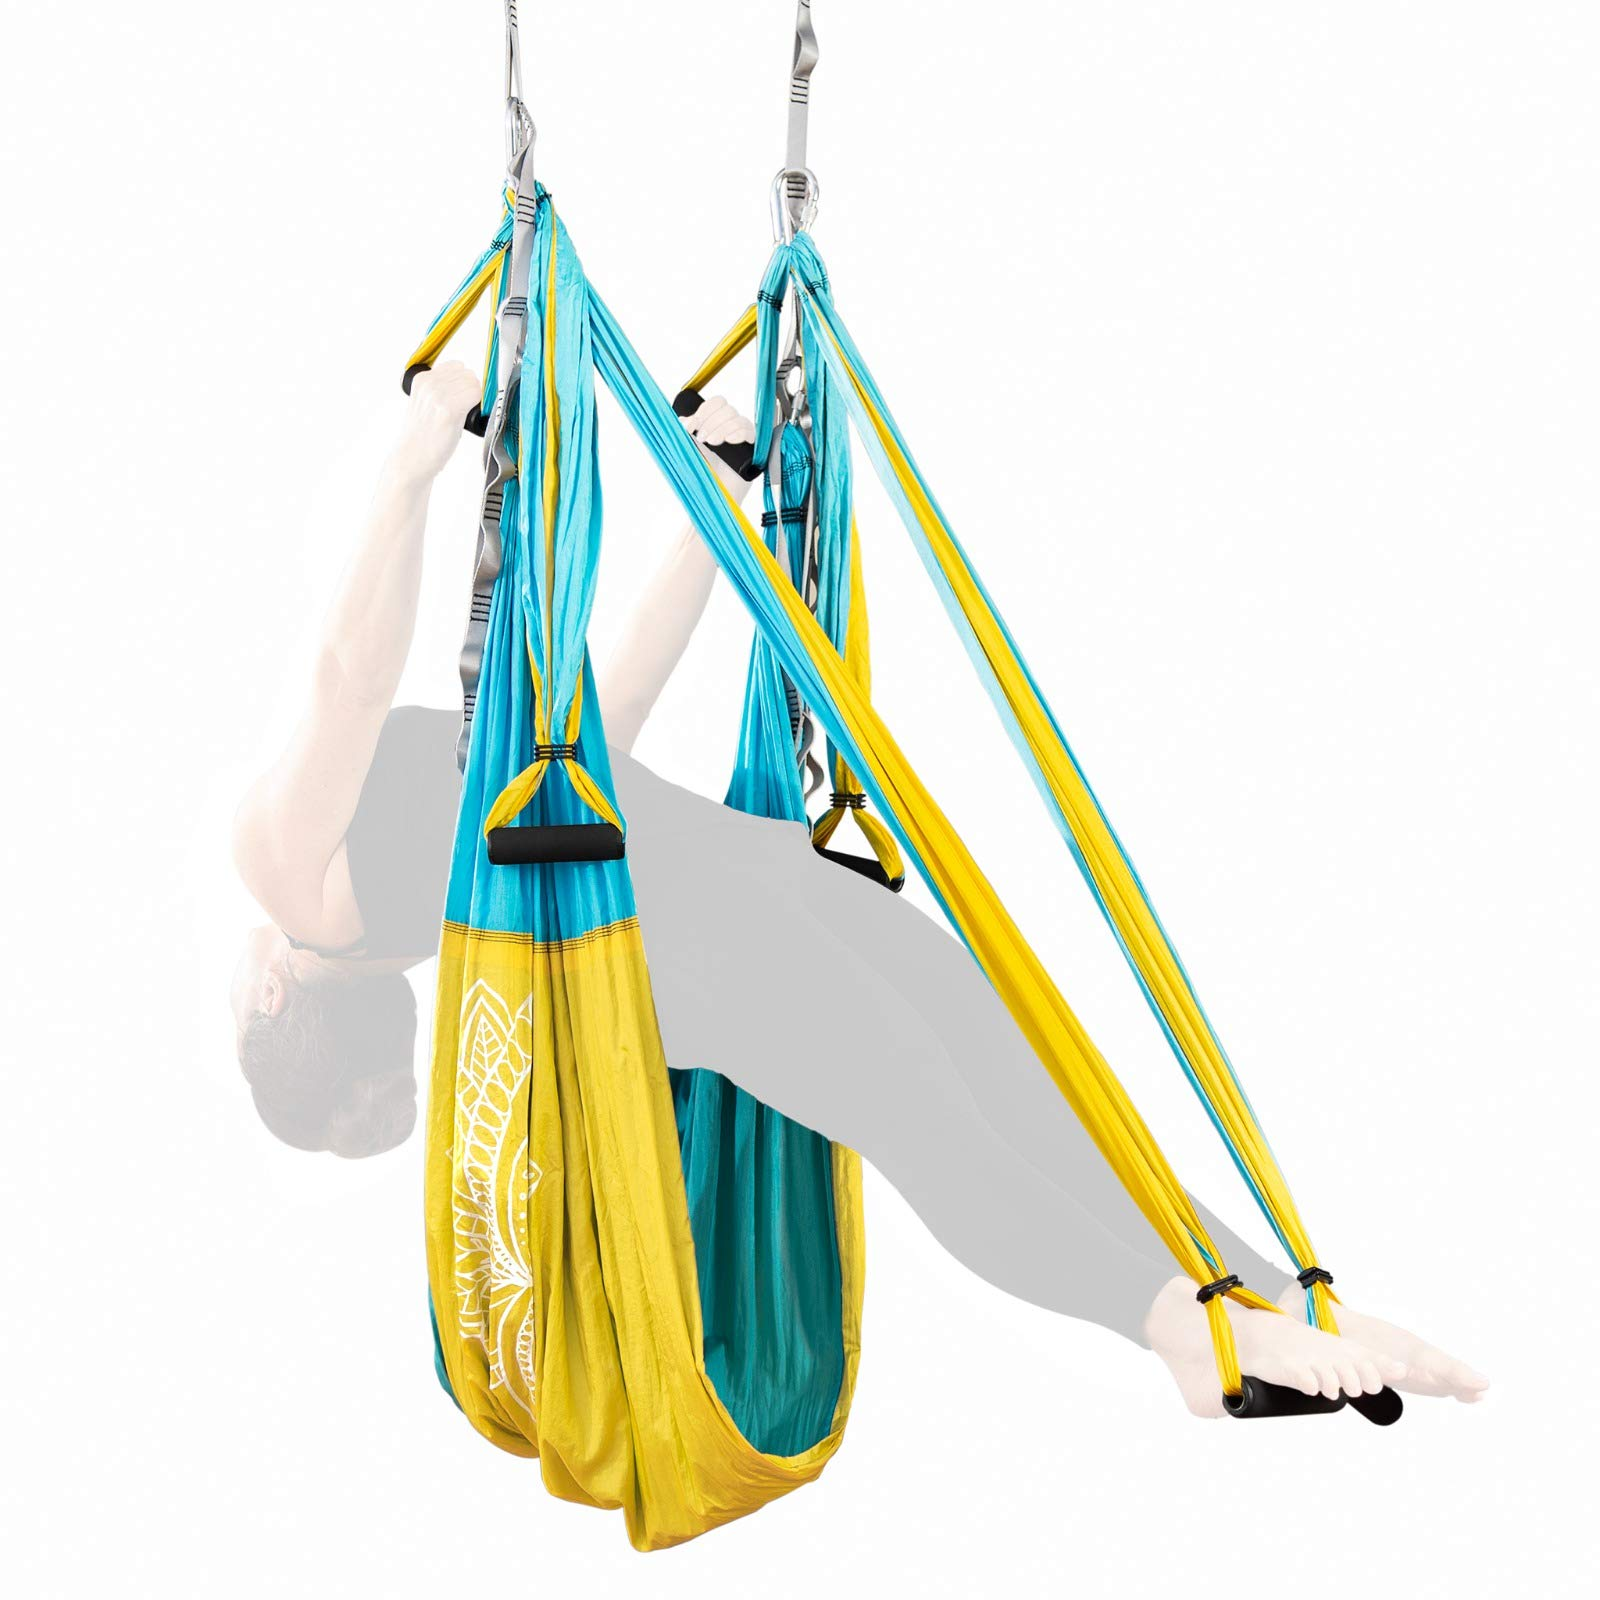 Adult Yoga Trapeze Swing Kit - Hanging Aerial Yoga Equipment System for Body Inversion, Flexibility and Exercise - Parachute Fabric Hammock Sling with Rubber Grip Handles & Carabiners - Hammock Strap